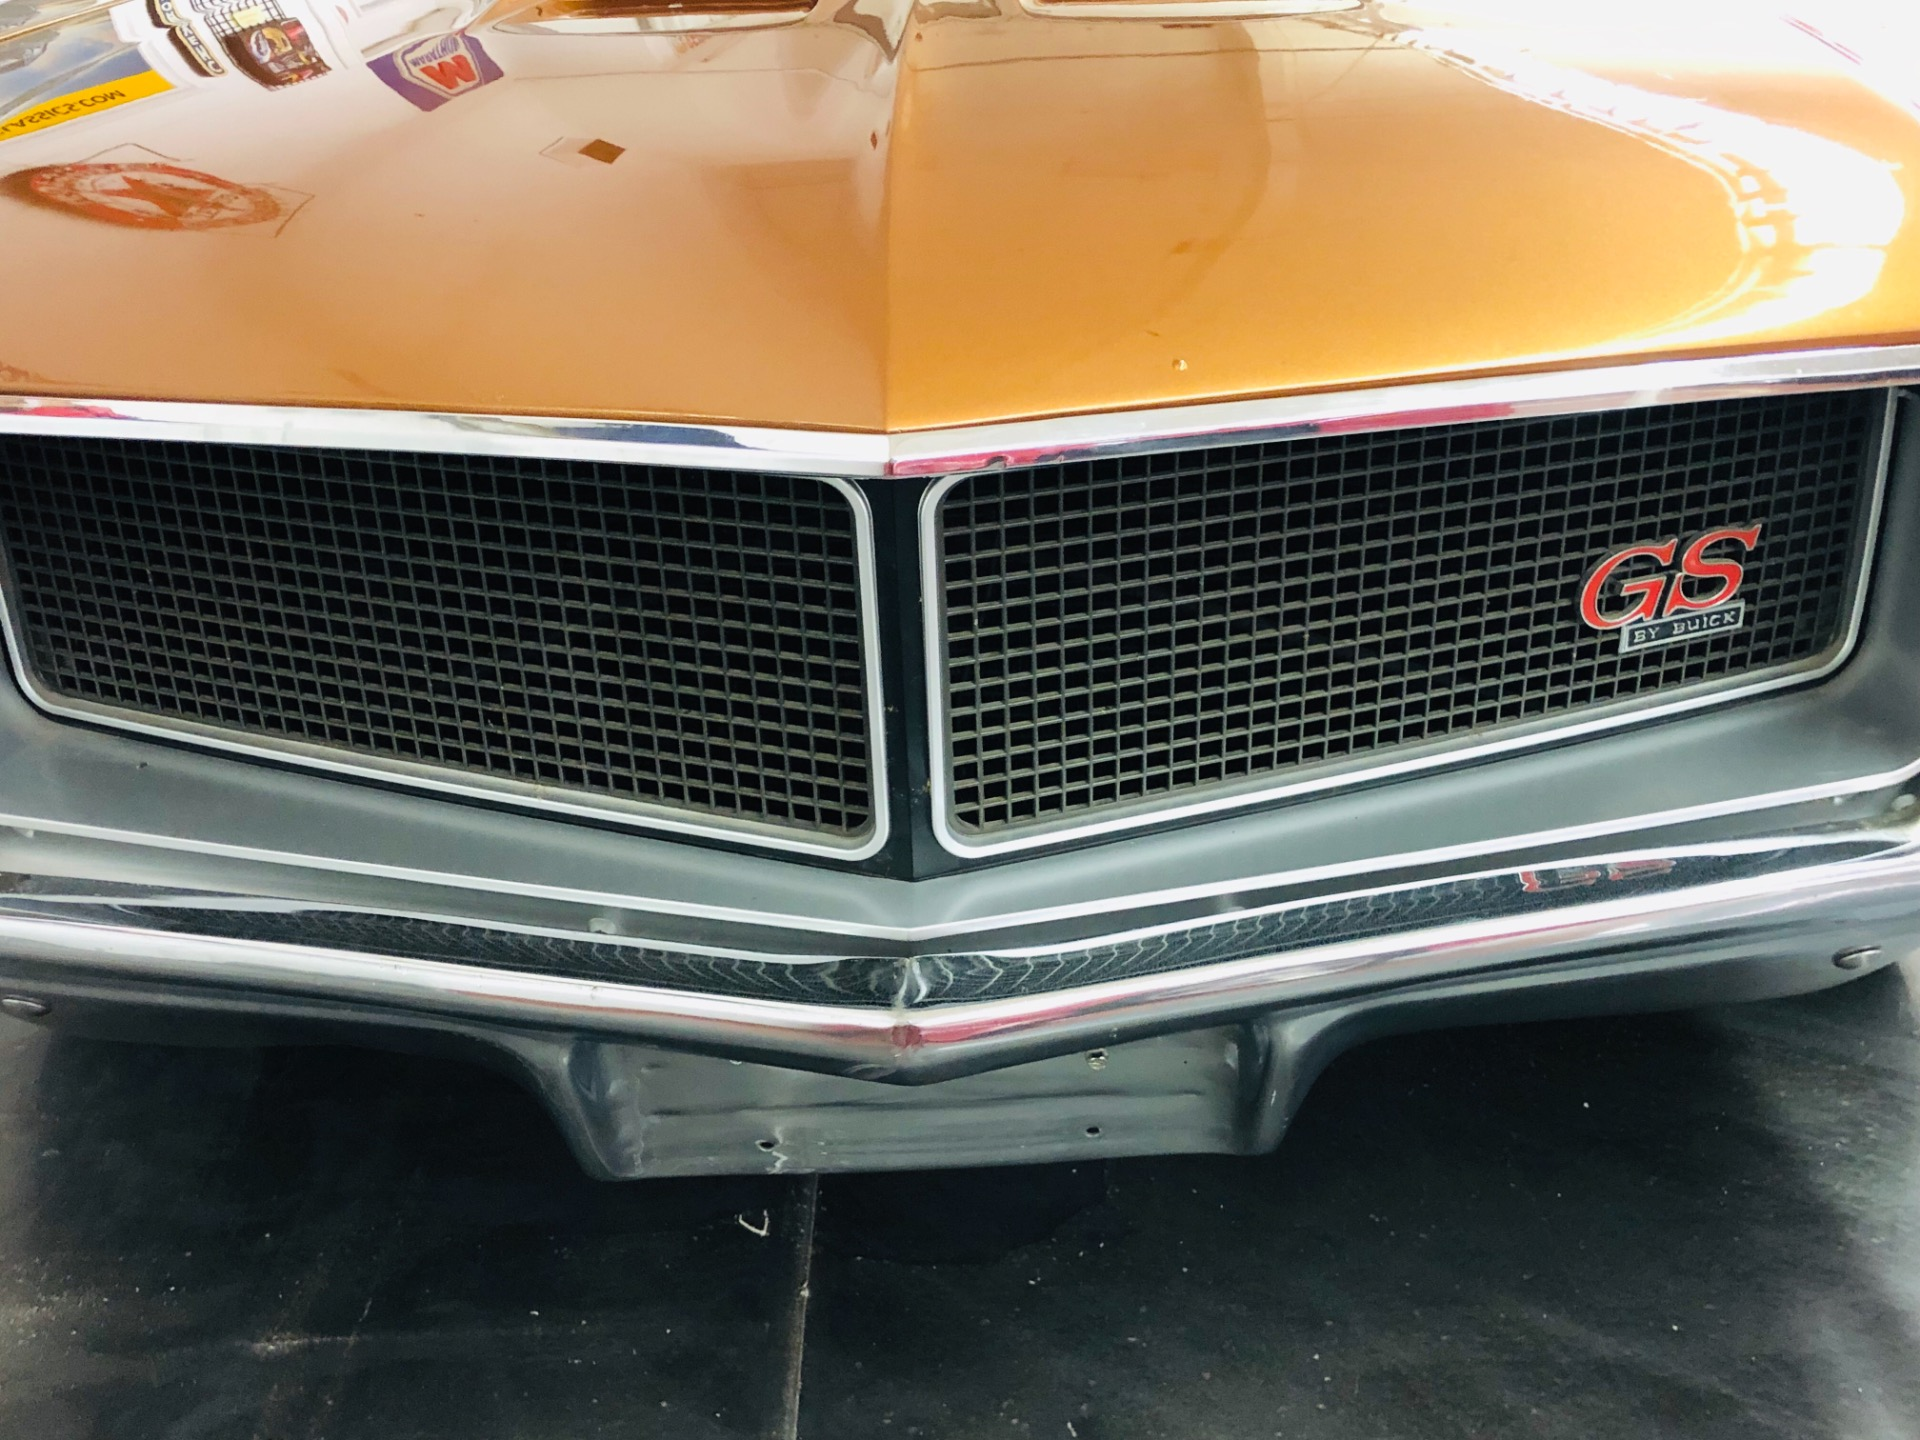 Used 1970 Buick Skylark -Convertible GS Clone-Auto/Overdrive-Factory 63 Code-VIDEO | Mundelein, IL